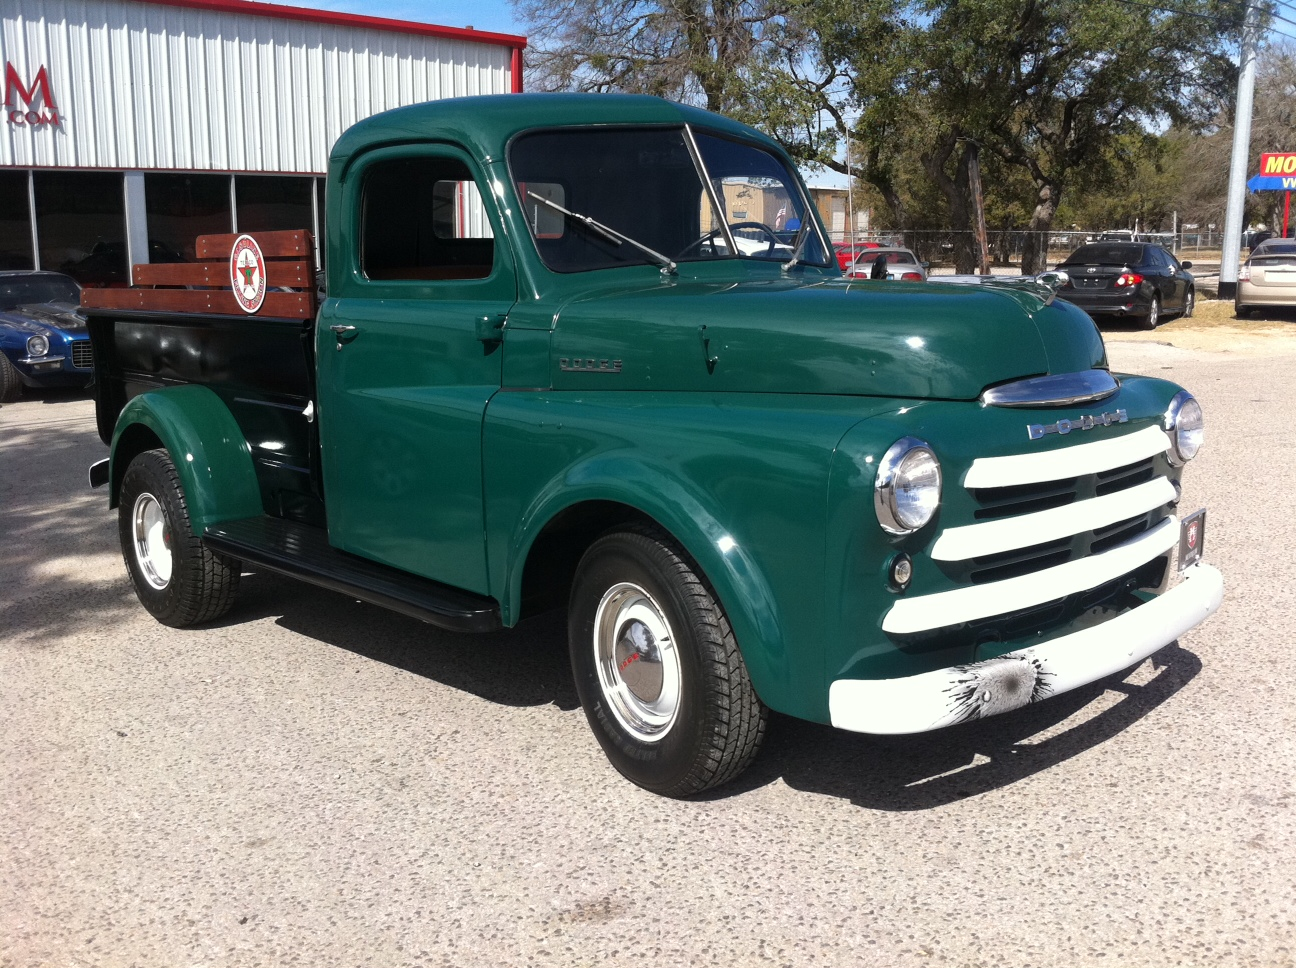 1950 Dodge Pickup For Sale Atx Car Pictures Real Pics From